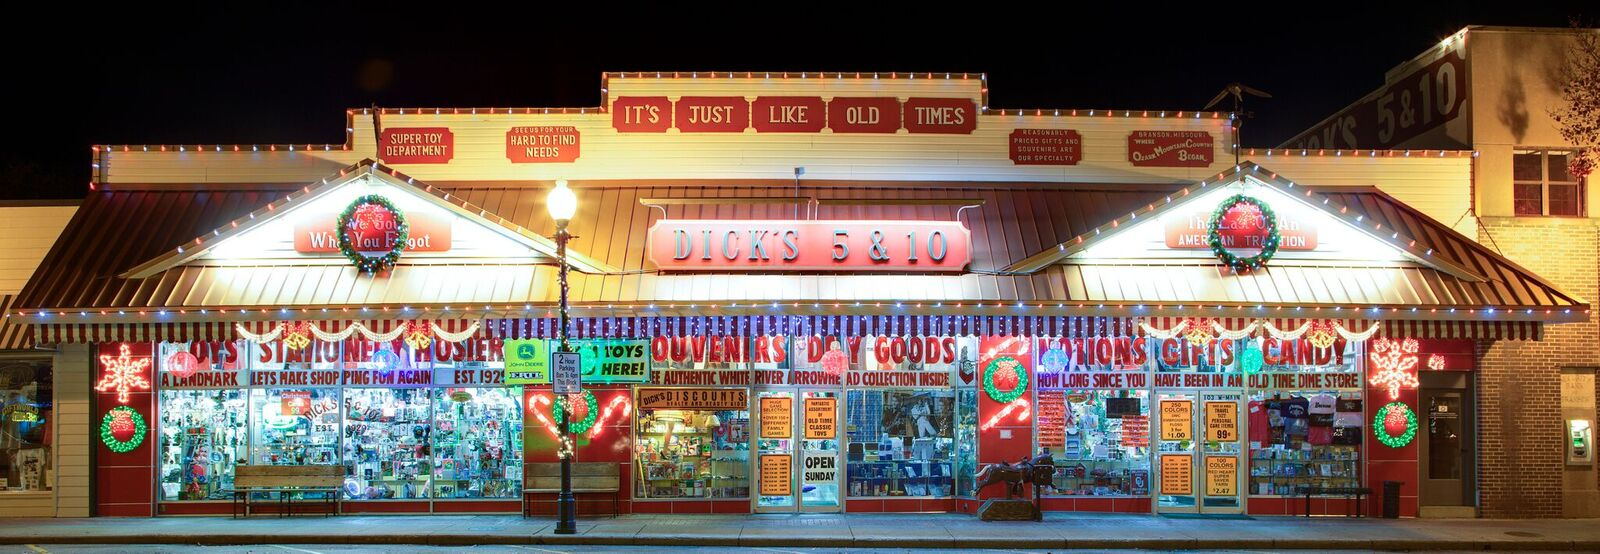 Or take a trip down memory lane at Dick's 5 & 10, an authentic dime store located downtown.